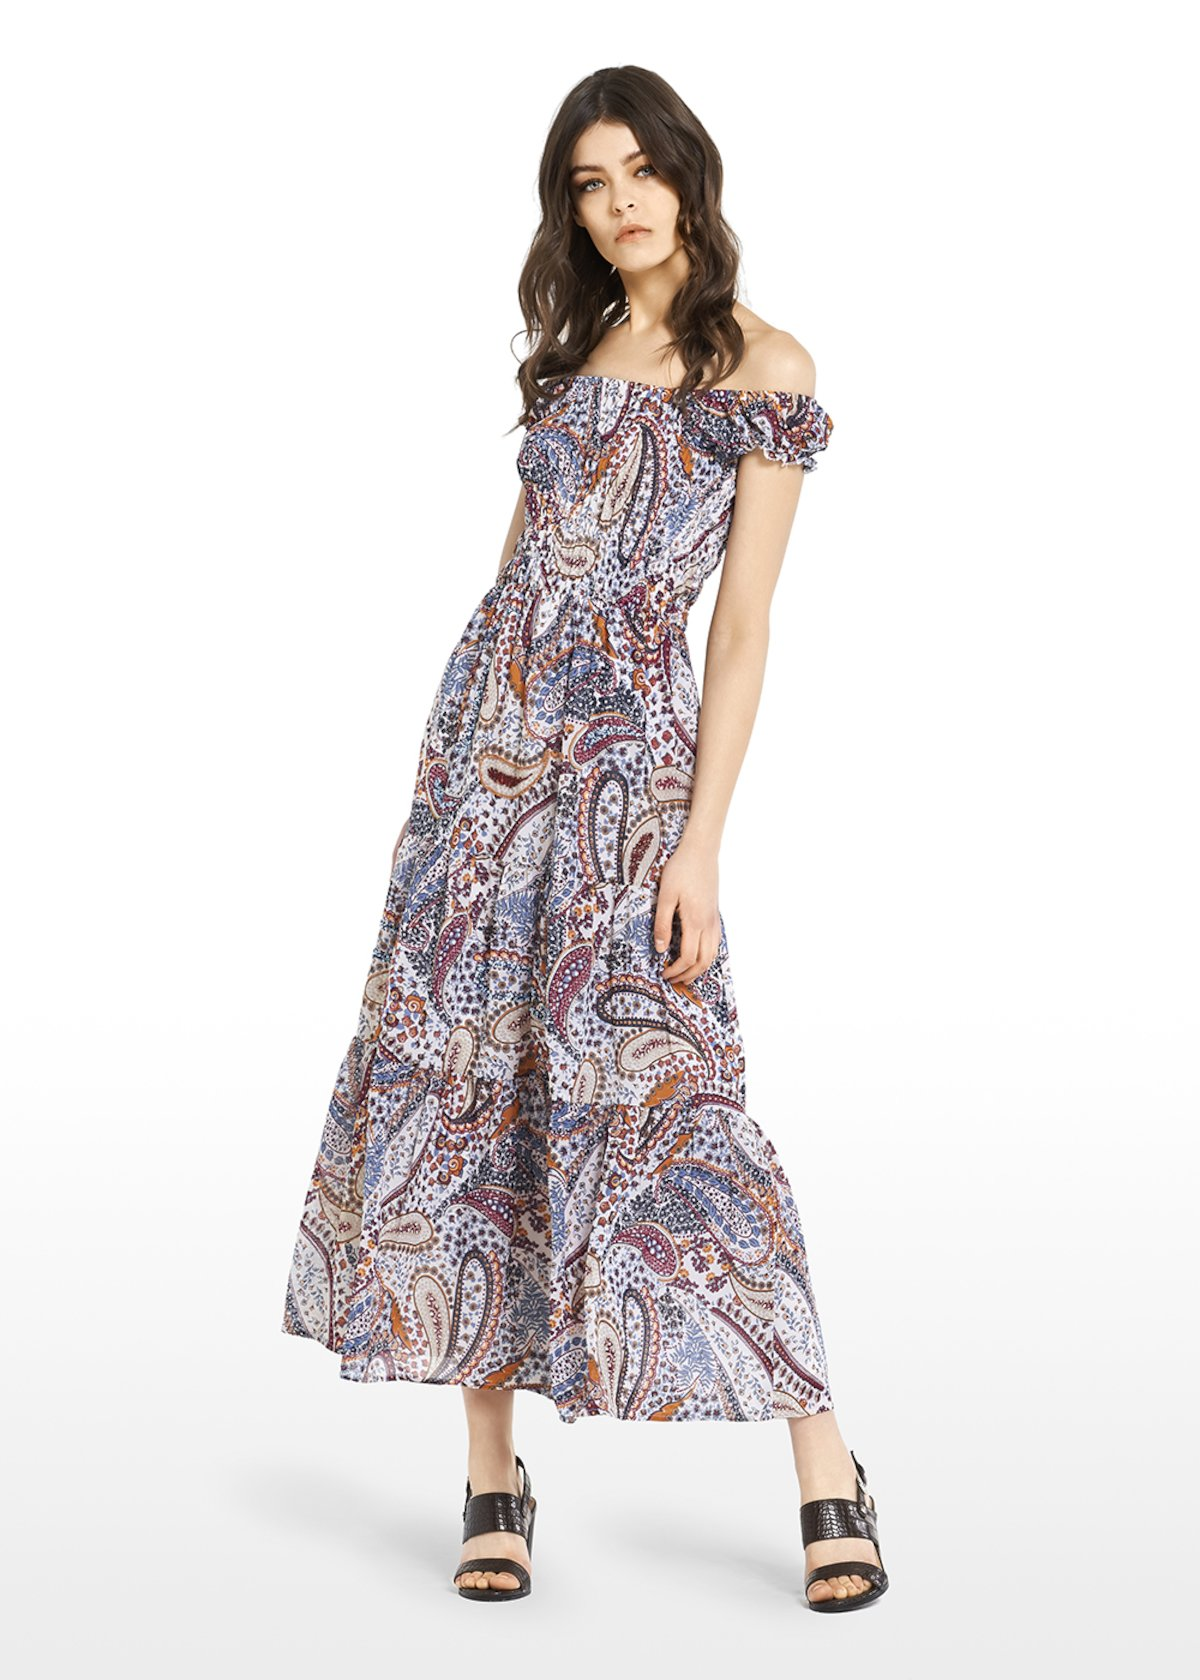 Alyson georgette dress with smock stitching and embroidery - White\ Morello\ Fantasia - Woman